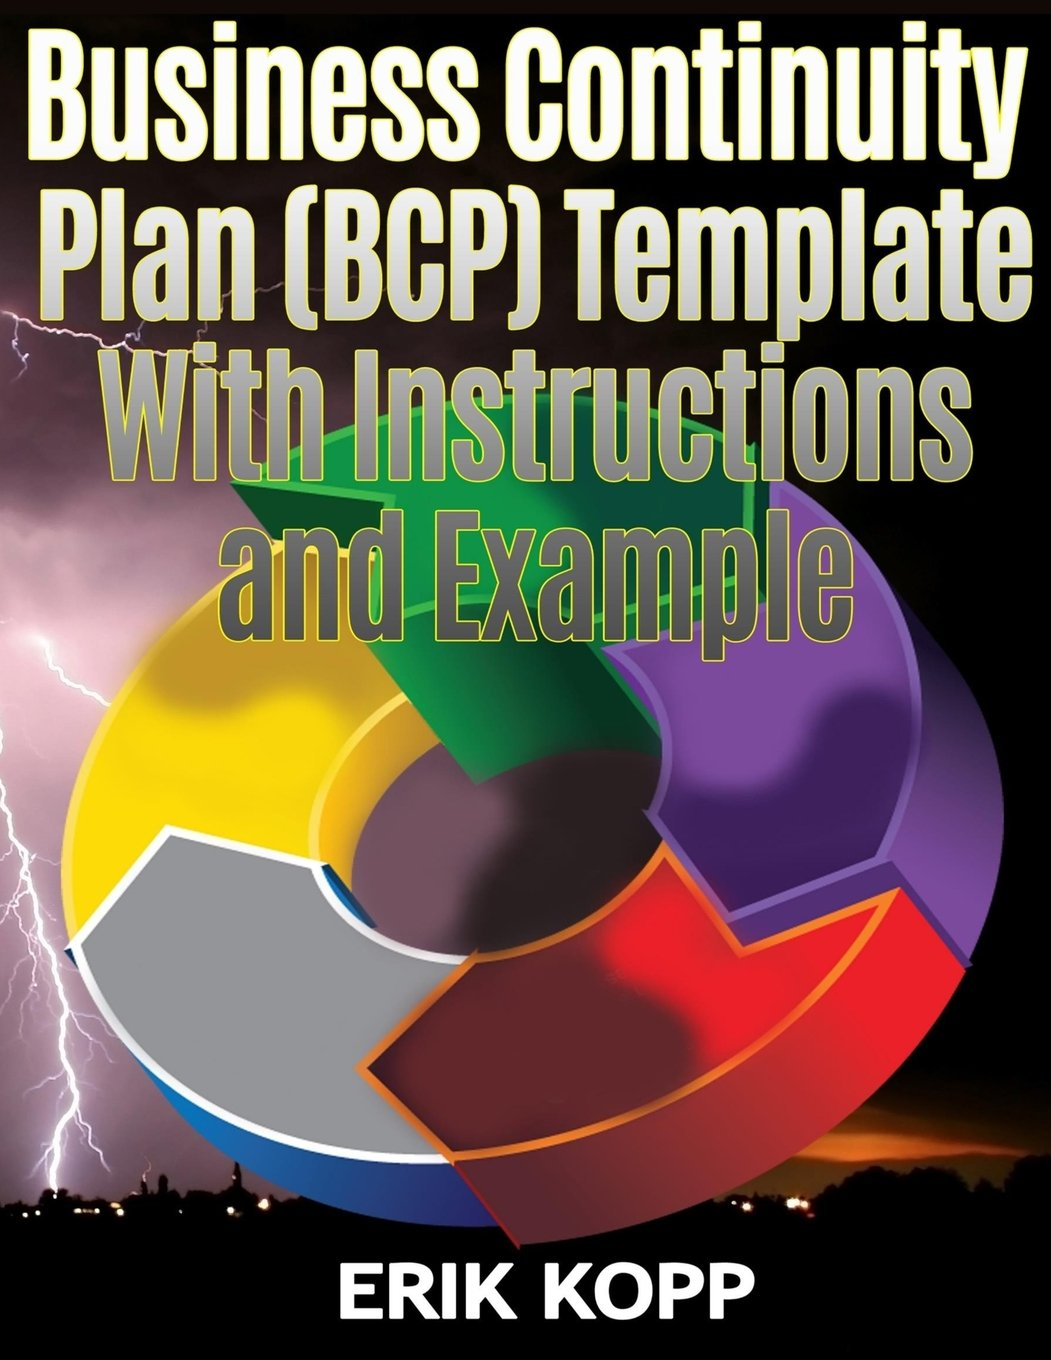 Business Continuity Plan BCP Template With Instructions And - Business continuity plan template free download